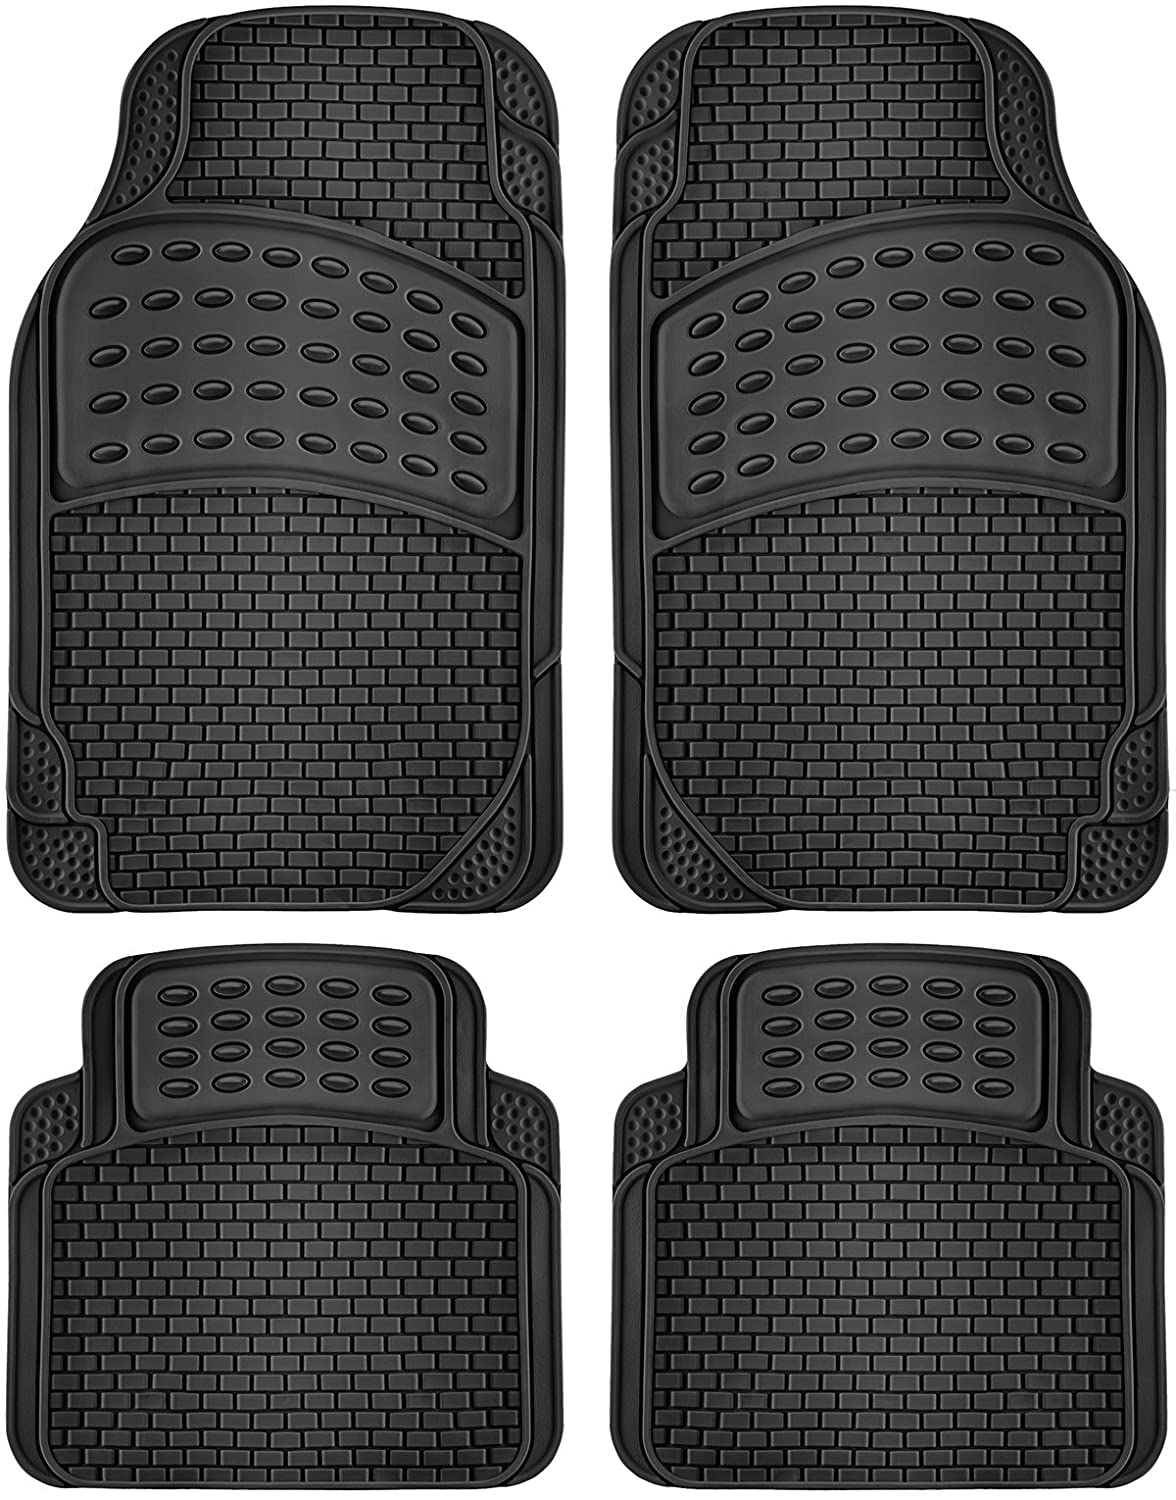 Weathertech floor mats rav4 2012 - Oxgord Fmpv01a Bk Front Rear Driver Passenger Seat Ridged Heavy Duty Rubber Floor Mats For Cars Suvs Vans Trucks Black